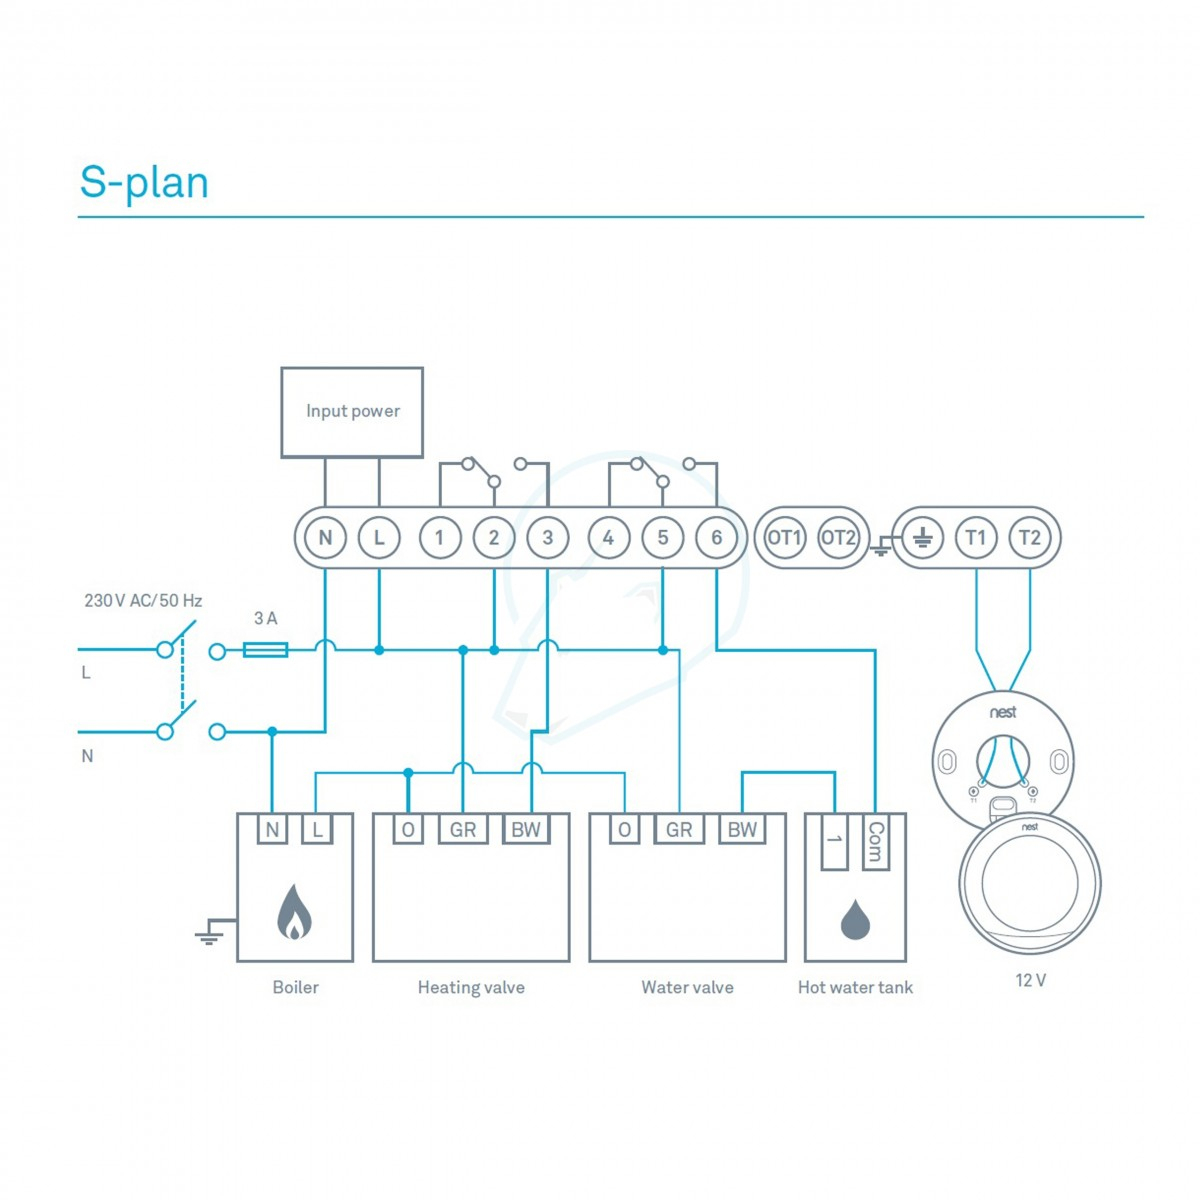 Nest 3Rd Generation Wiring Diagram Uk - Simple Wiring Diagram - Wiring Diagram Nest 3Rd Generation